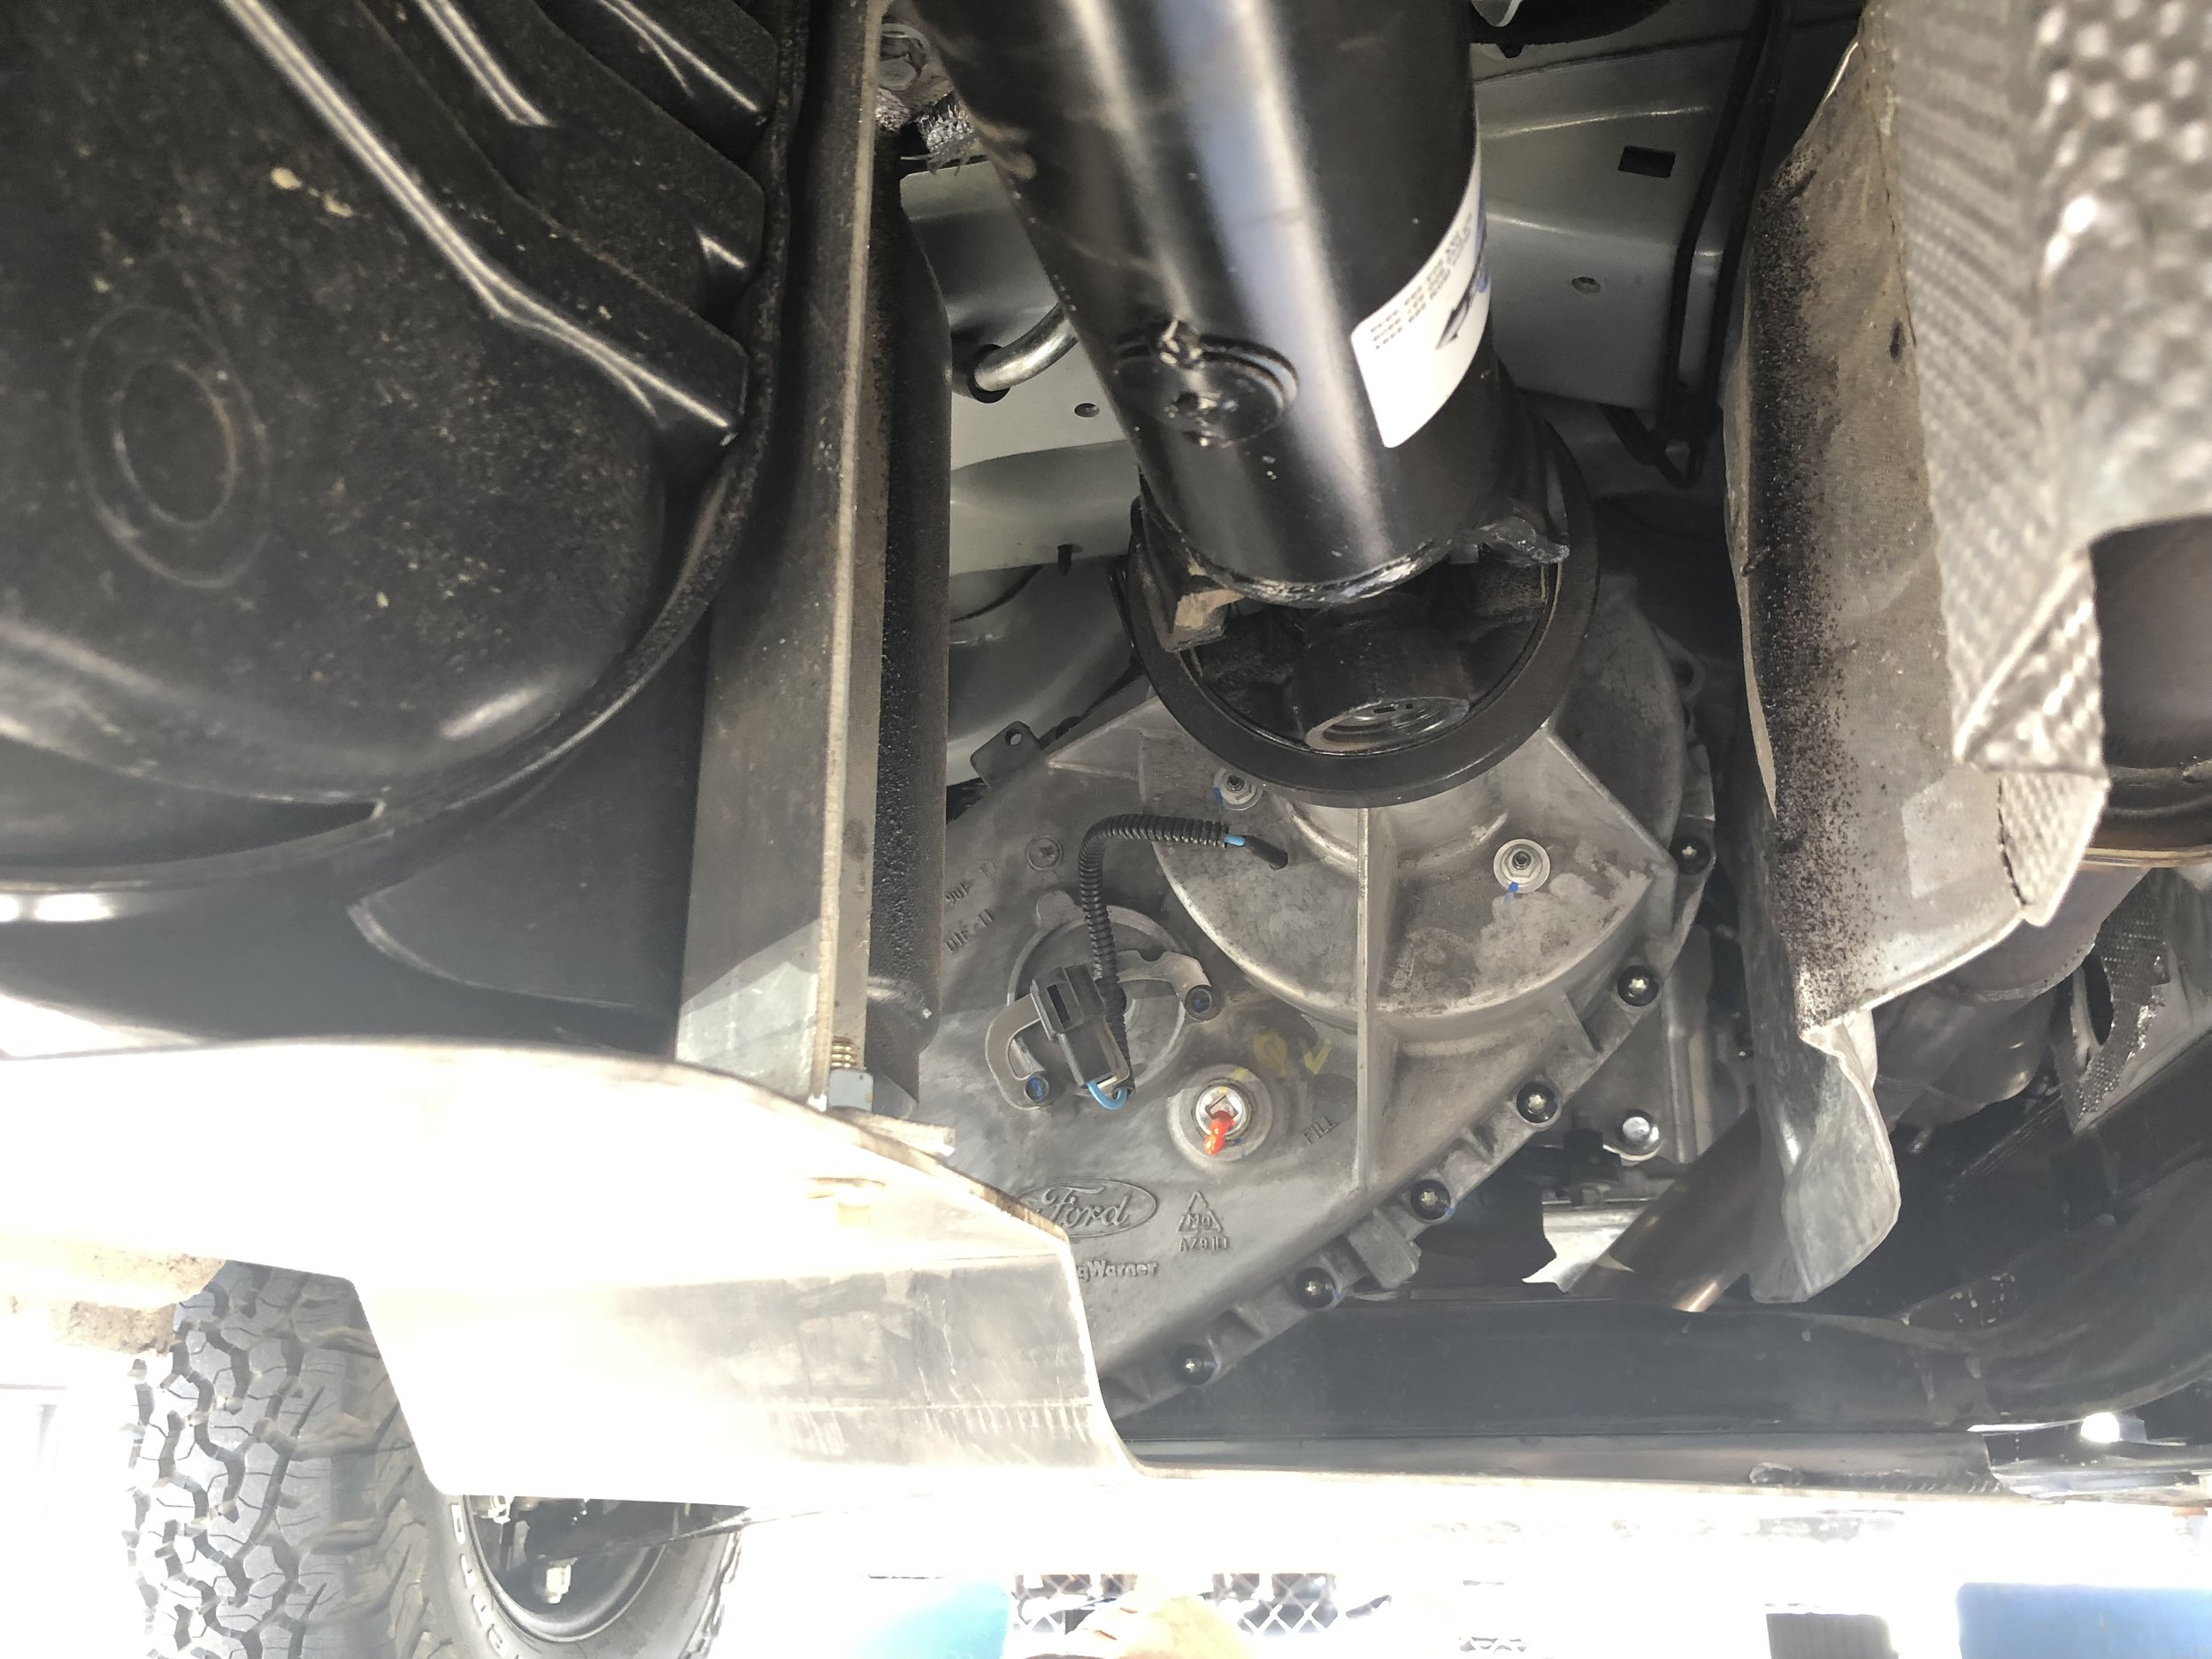 Rear of tranny to drive shaft